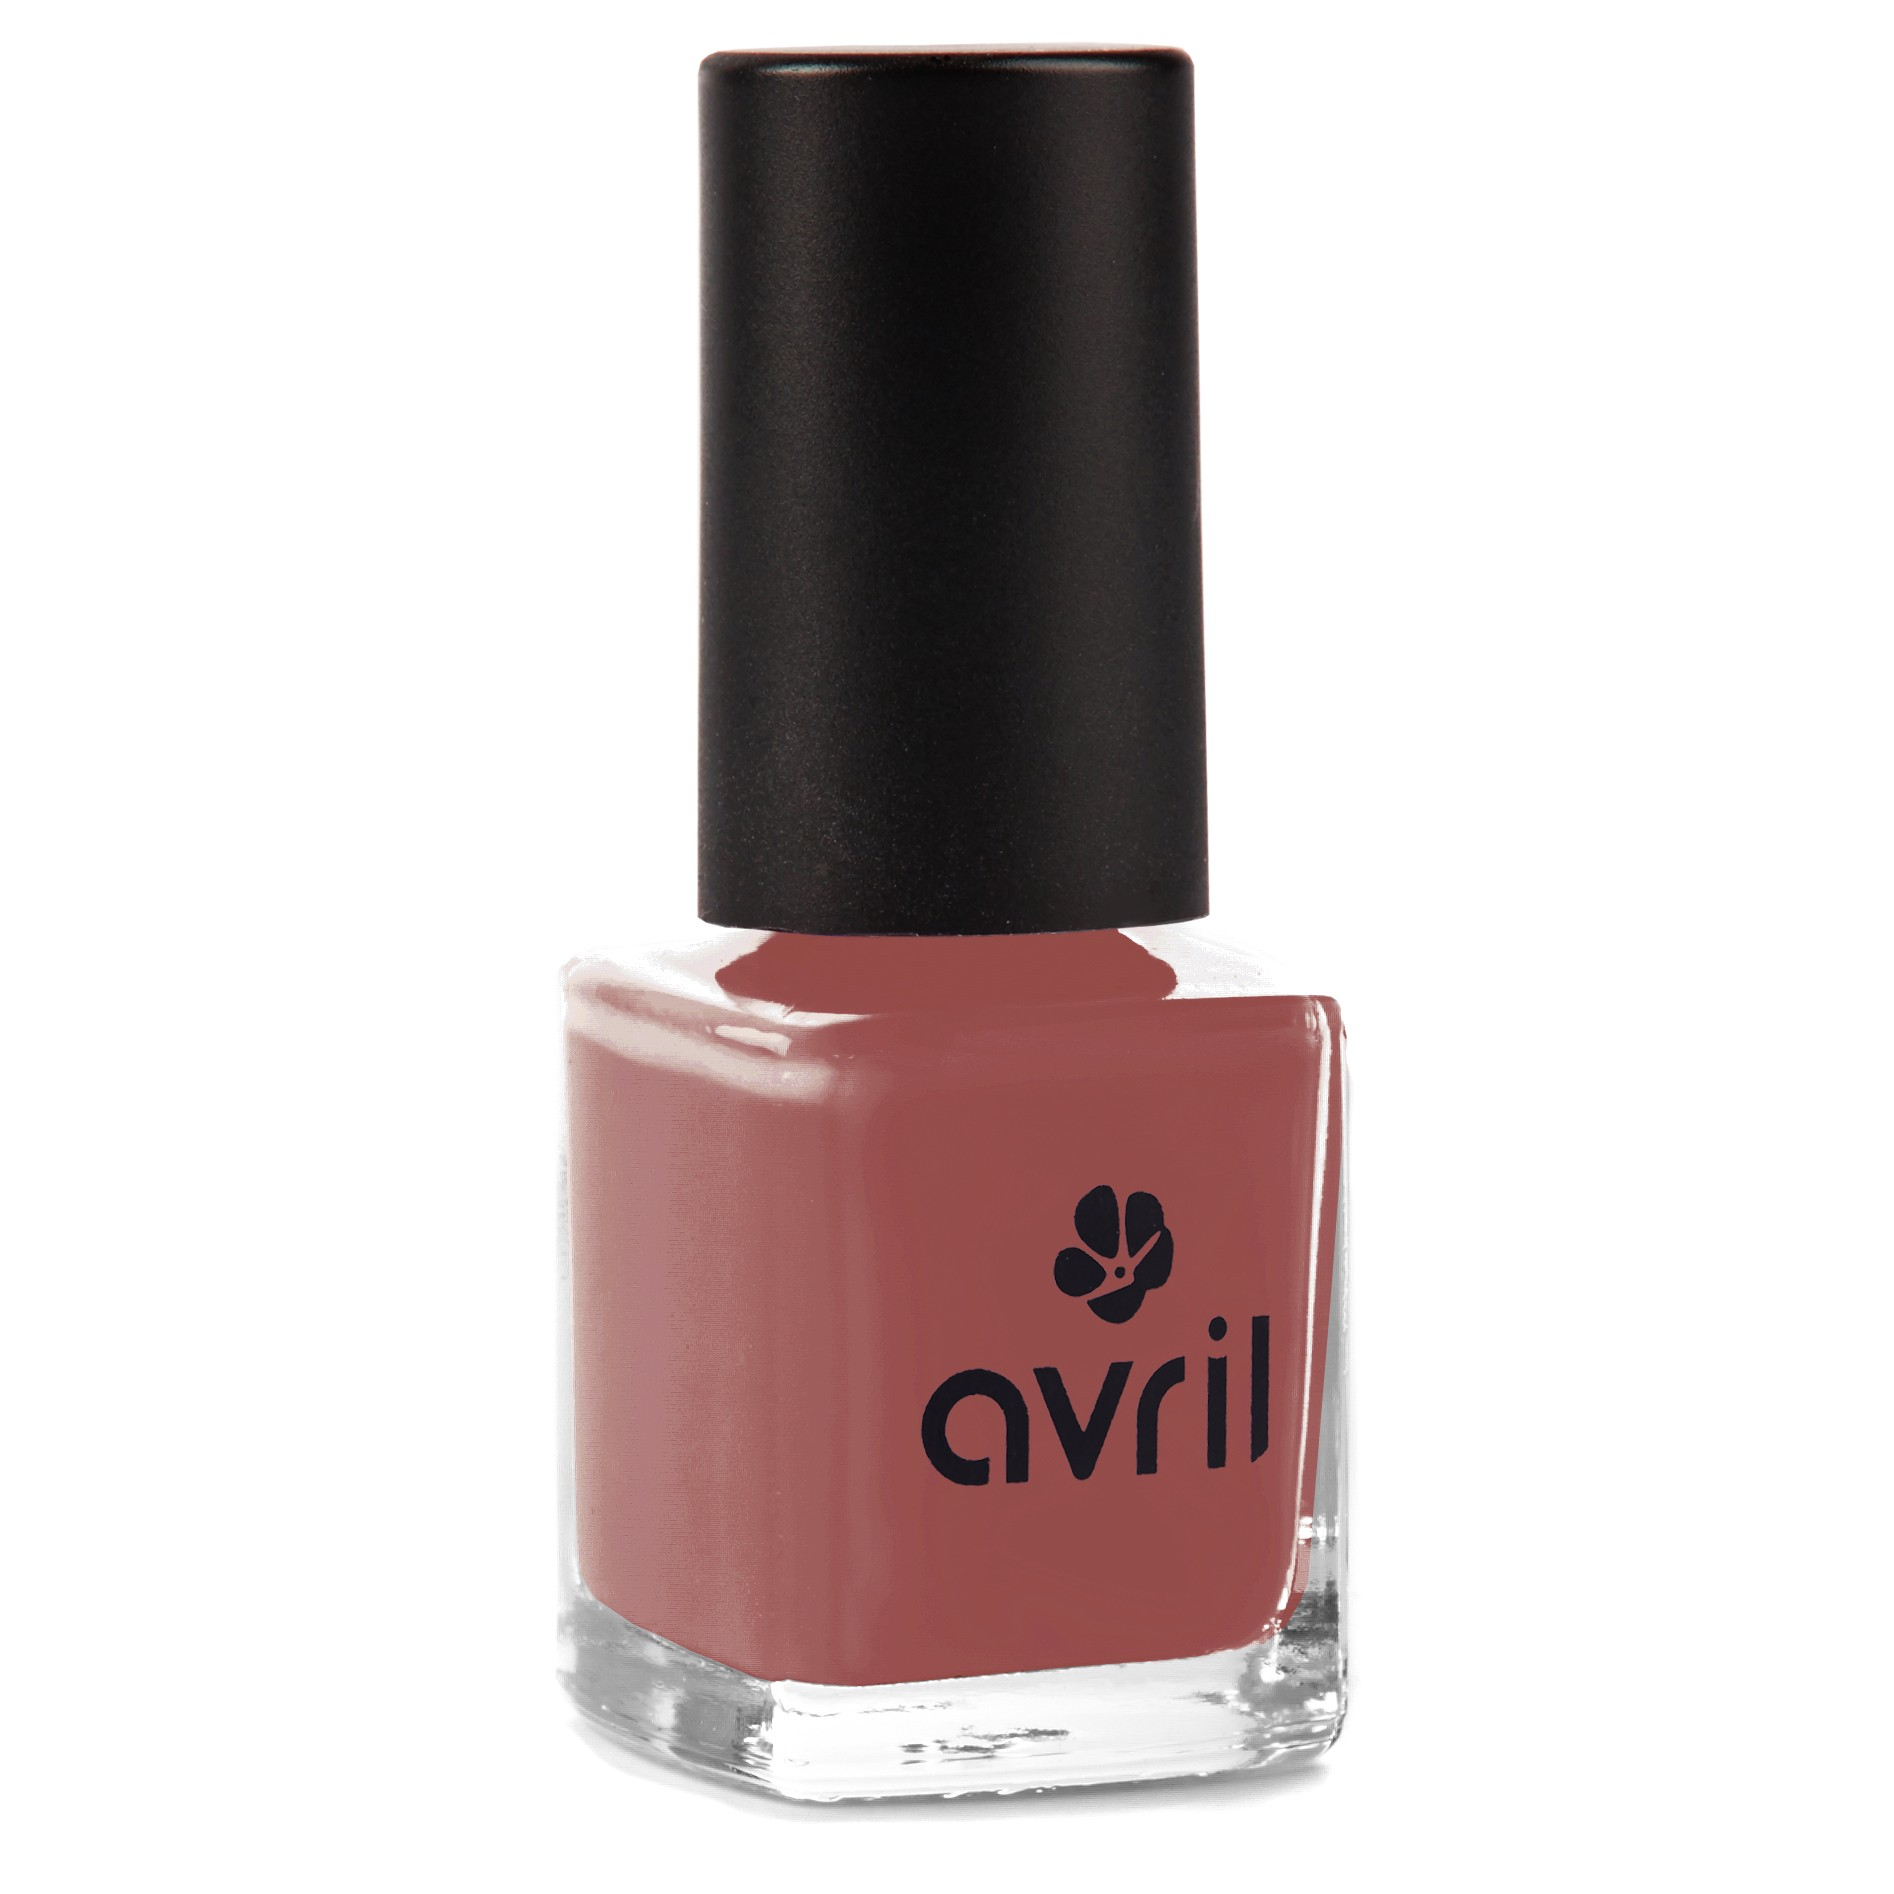 Nail polish not tested on animals and vegan - Avril